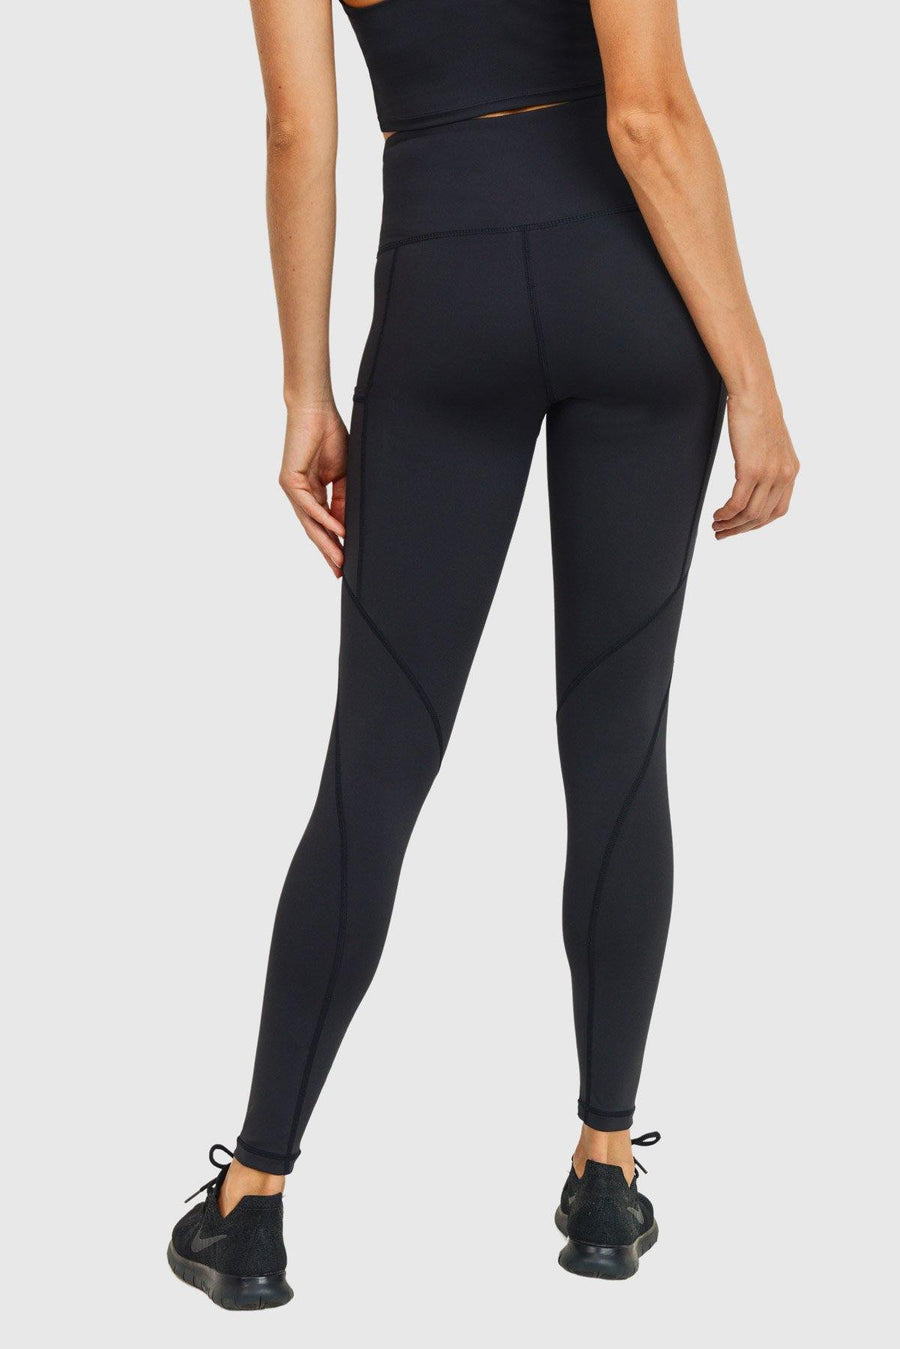 Solid & Slanted Panels Highwaist Leggings-Leggings-Mono B Athleisure-S-Plum Grey-Mono B Athleisure